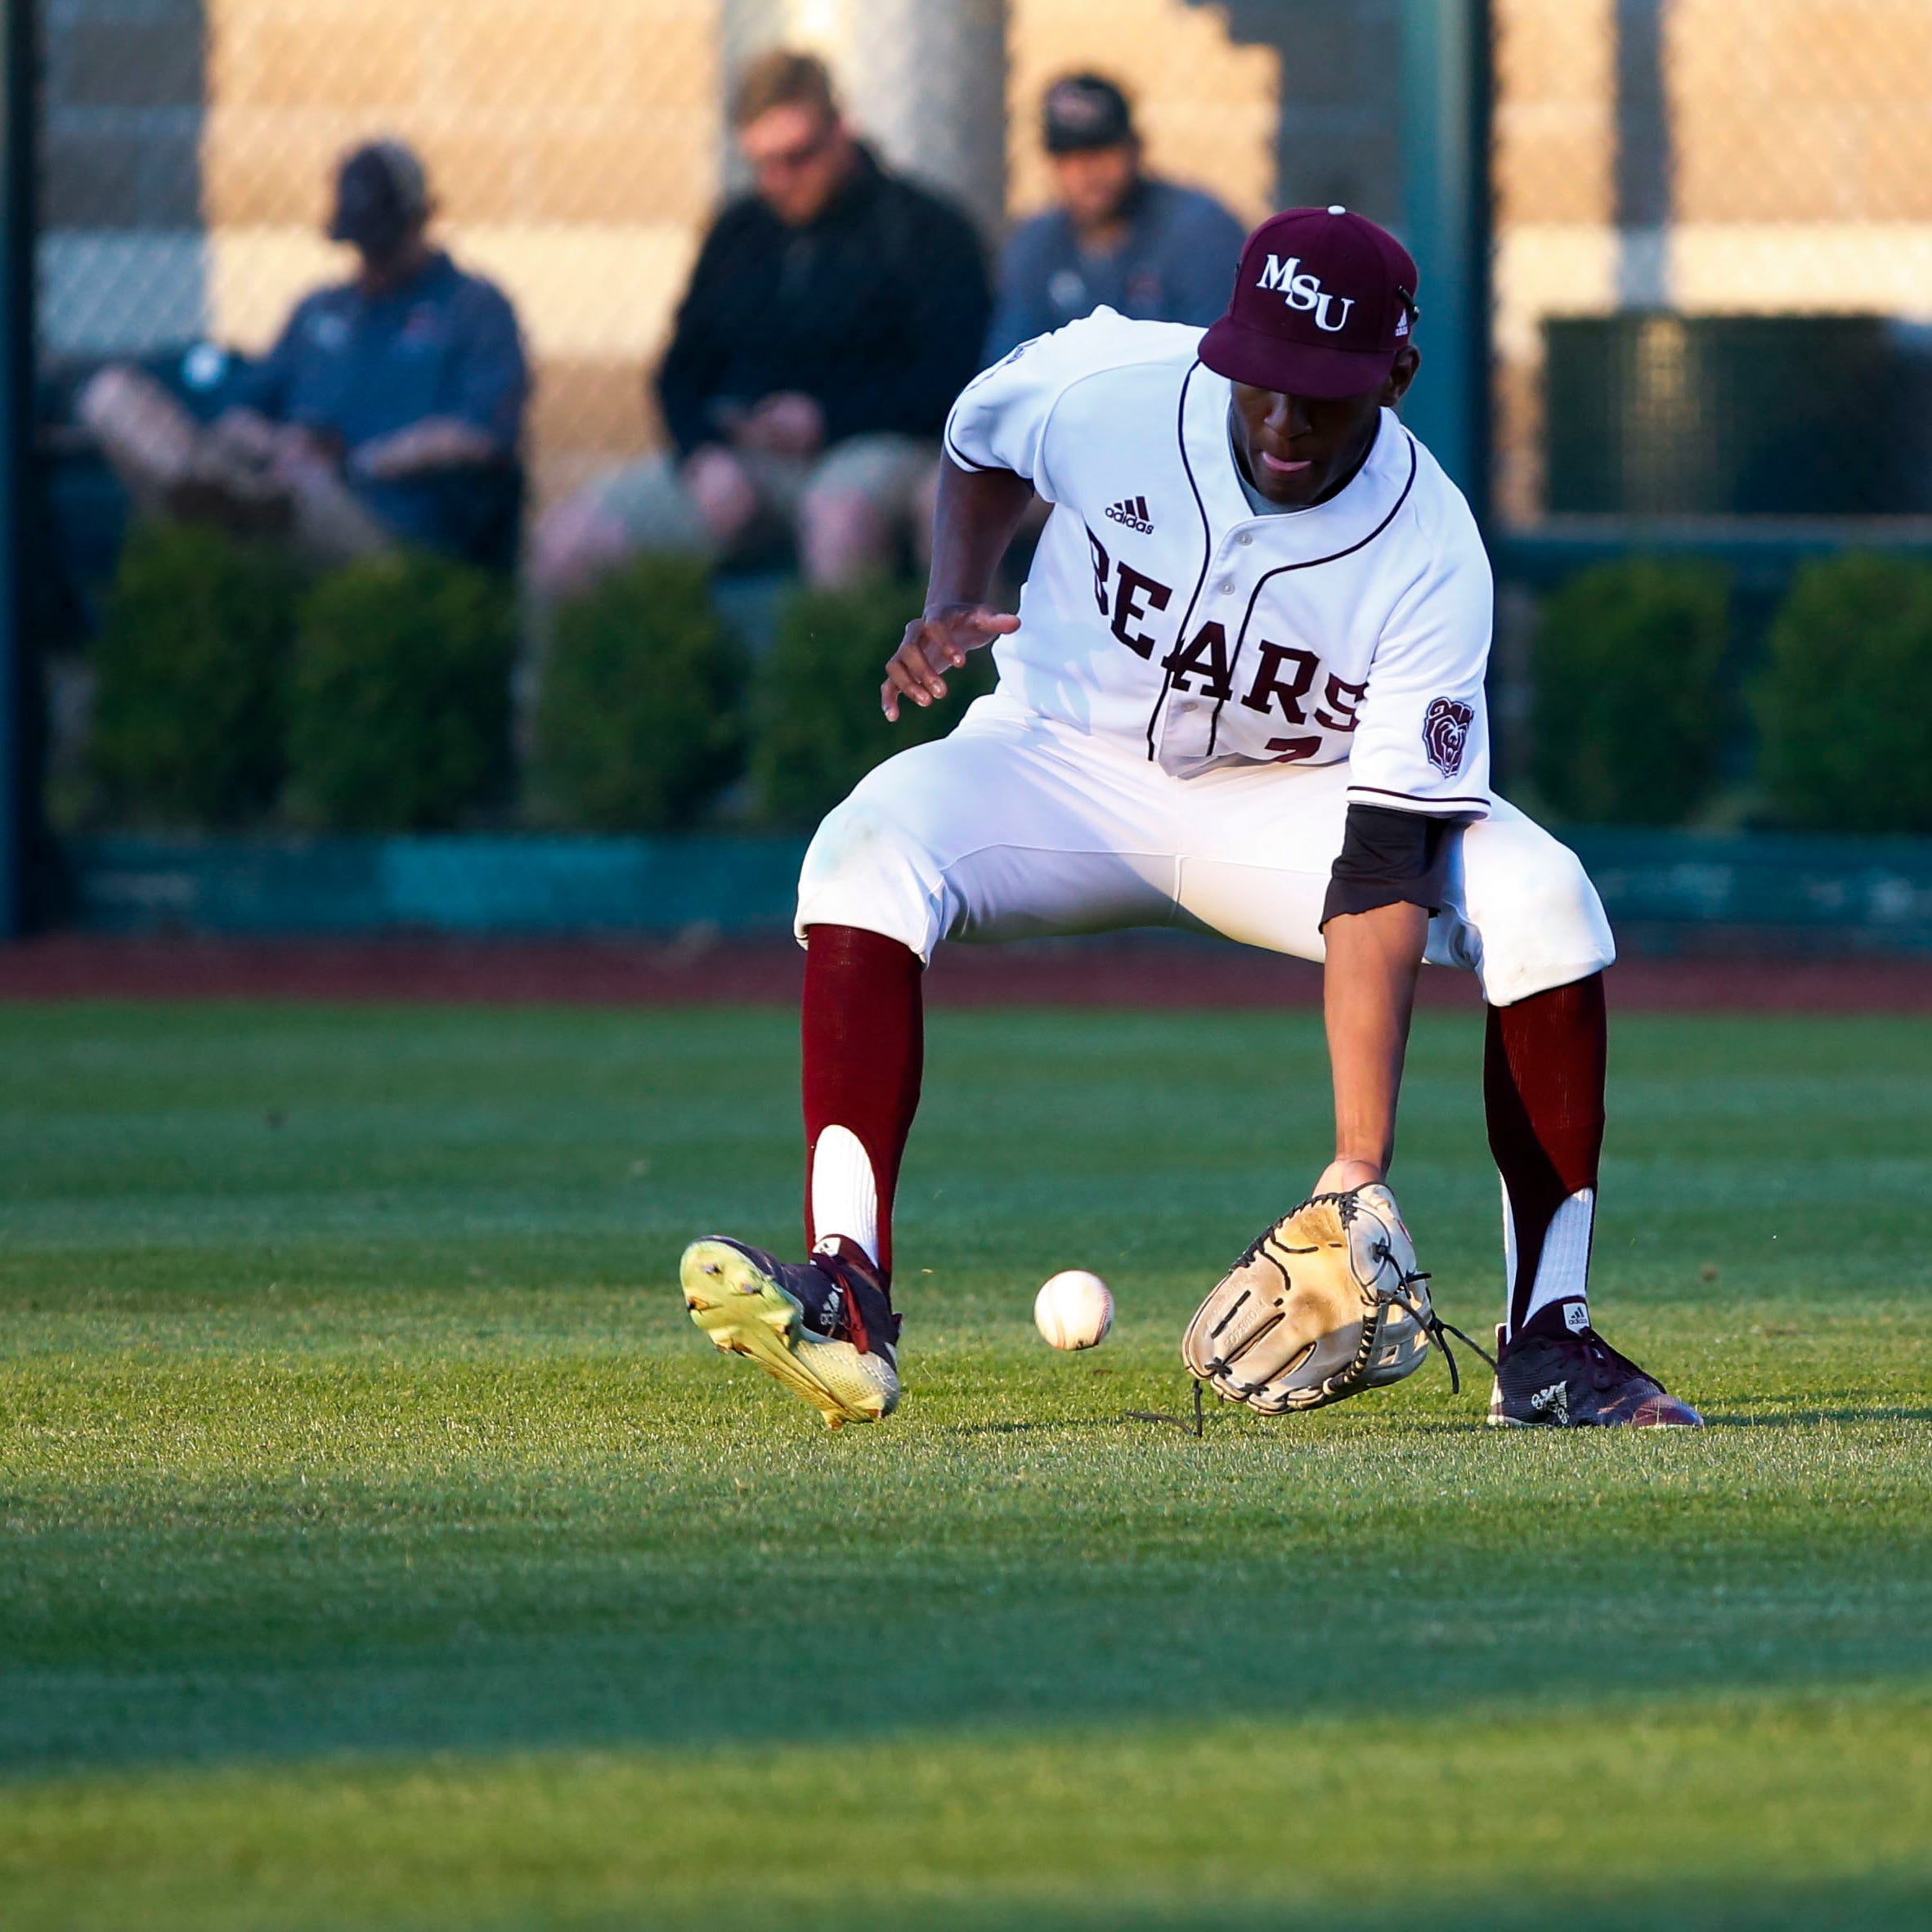 Missouri State baseball ties most single-season losses in program history